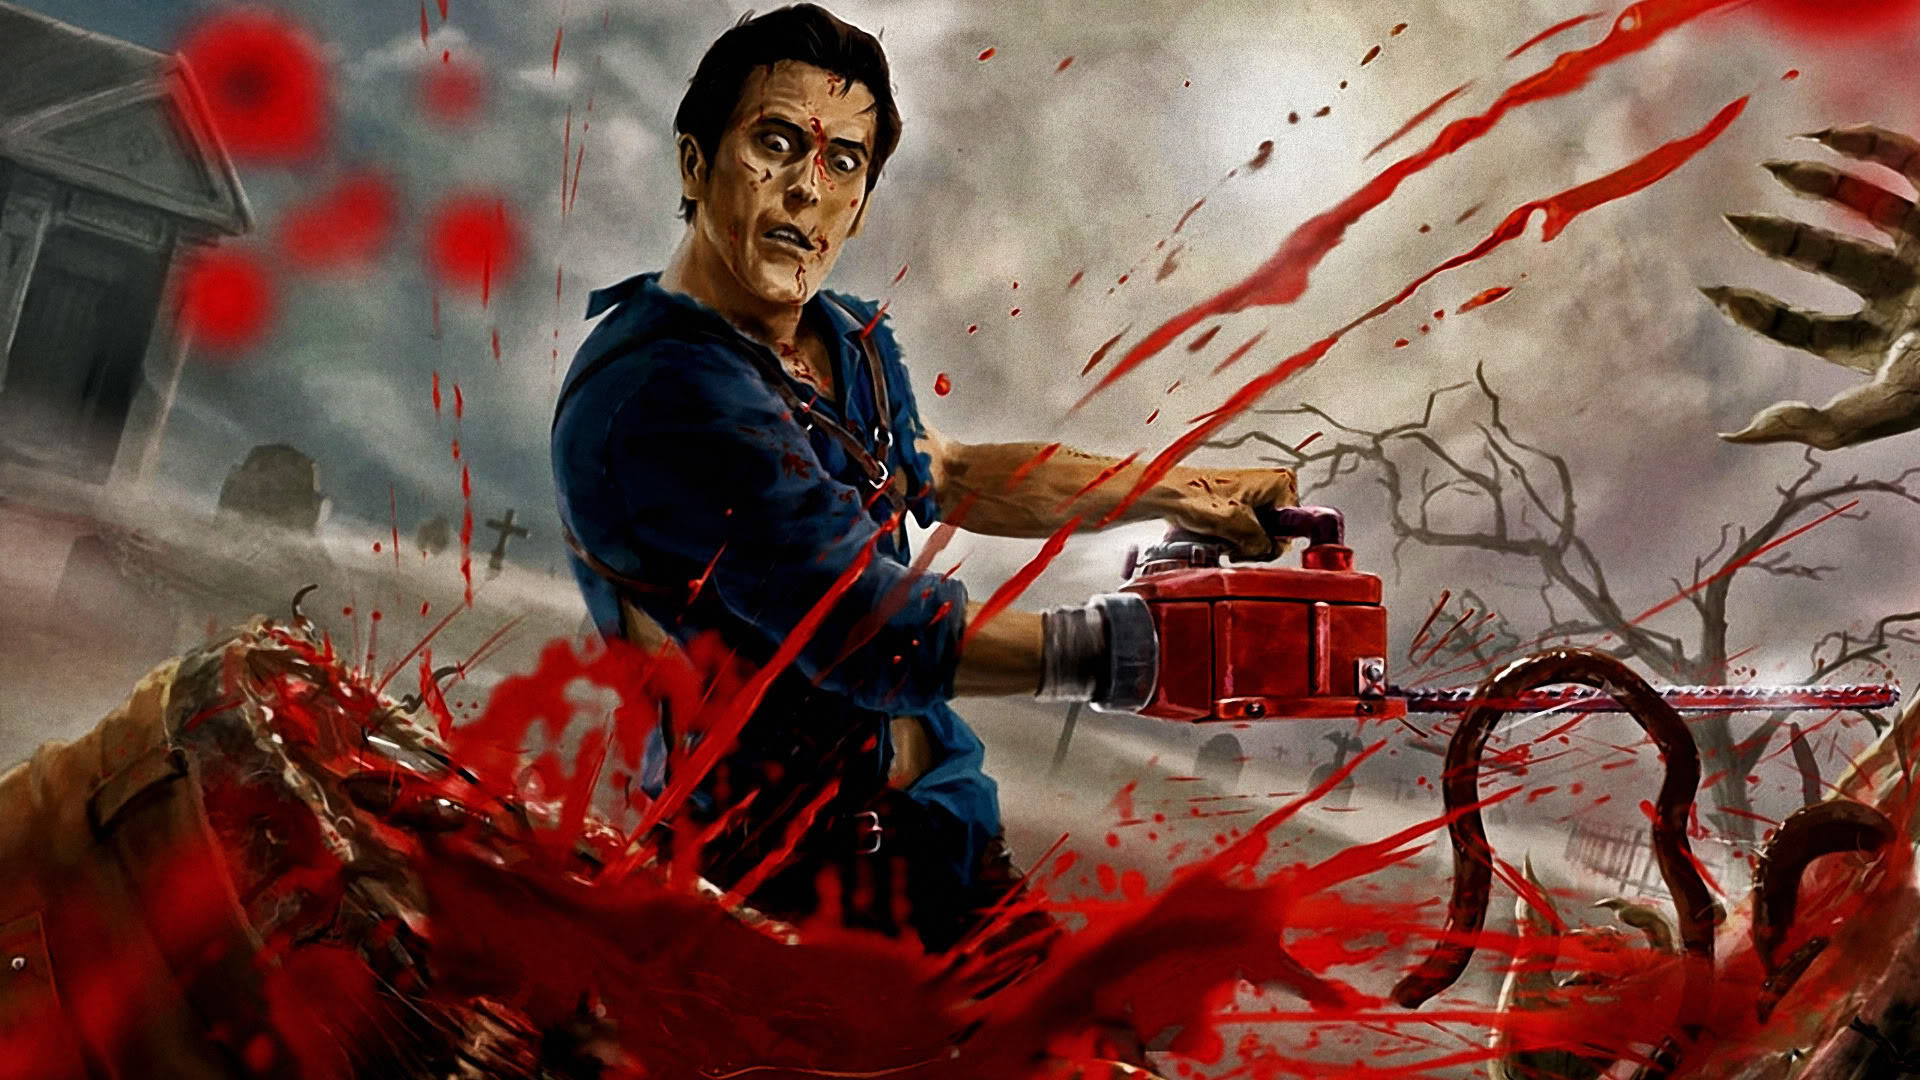 Ashley 'ash' j. williams the evil dead horror movie best characters